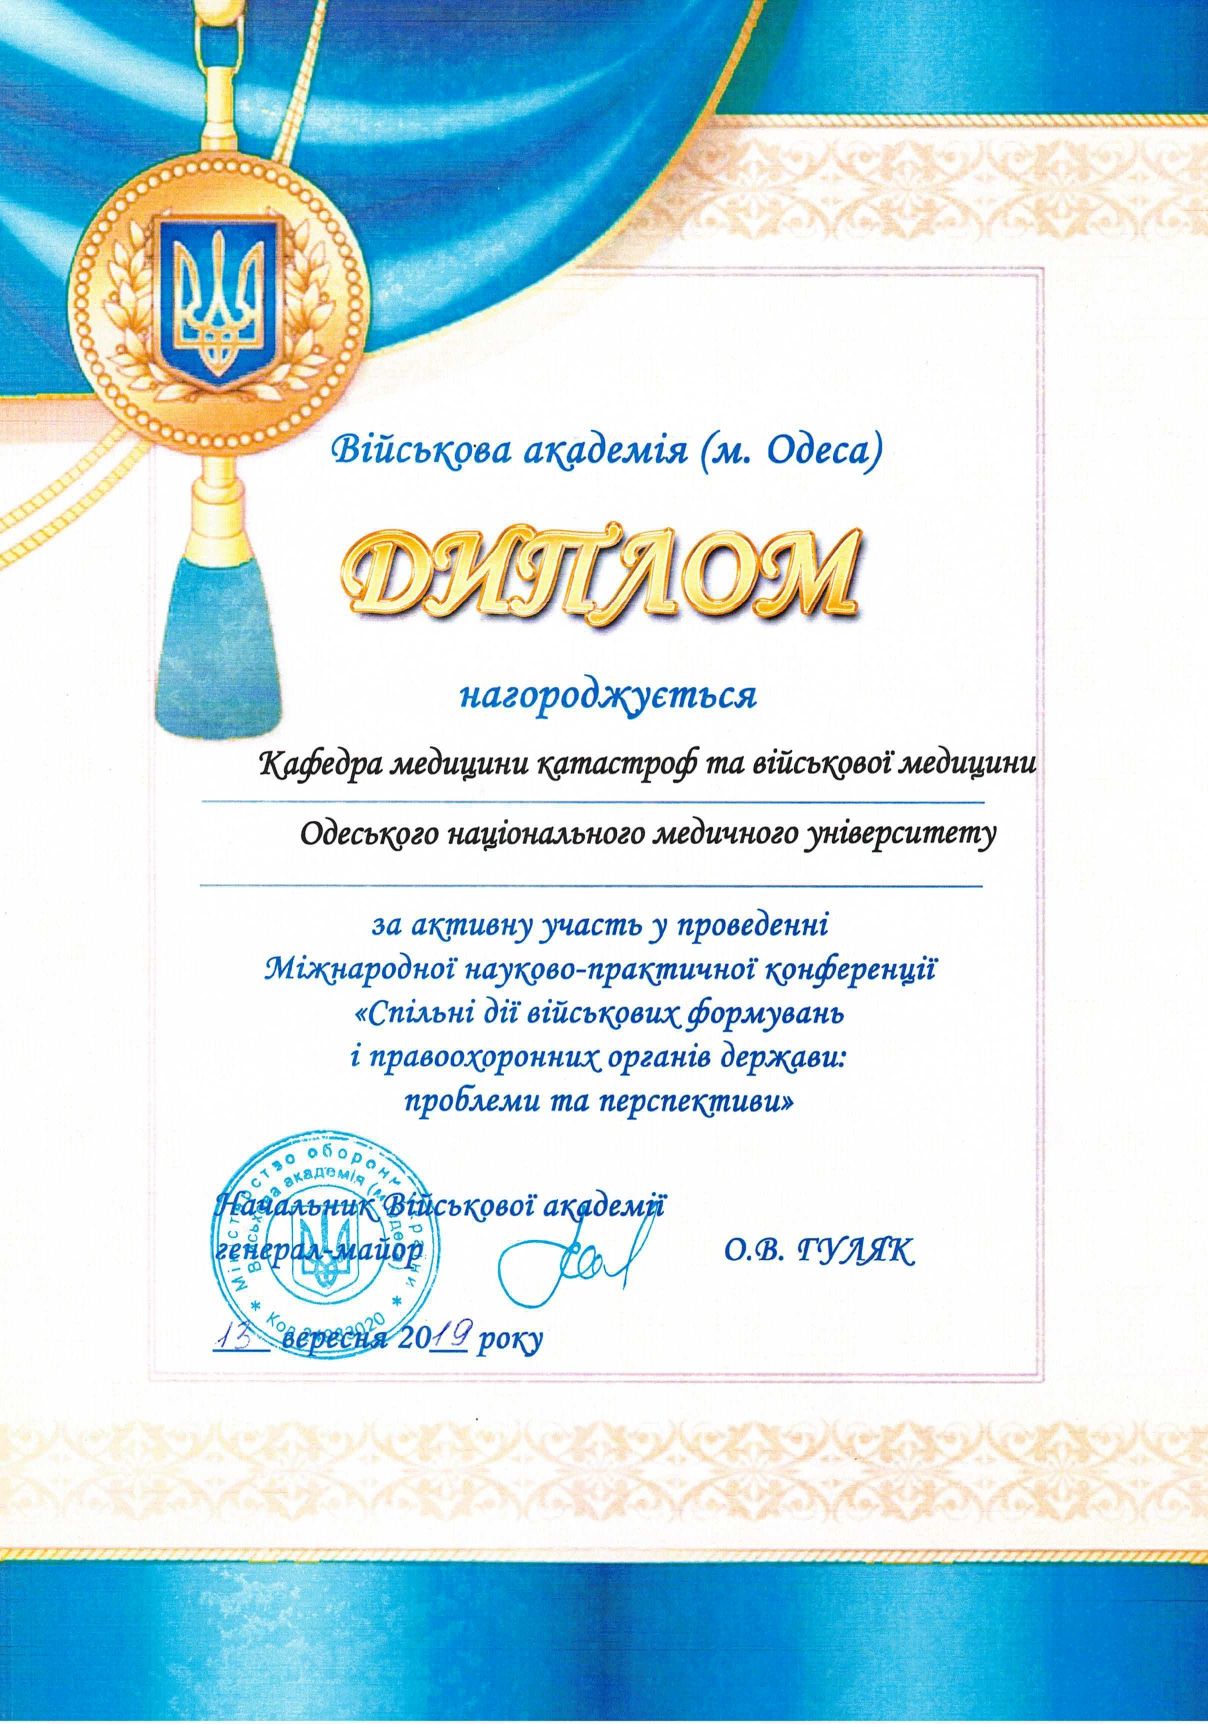 The Department of Disaster Medicine and Military Medicine of ONMedU received a diploma